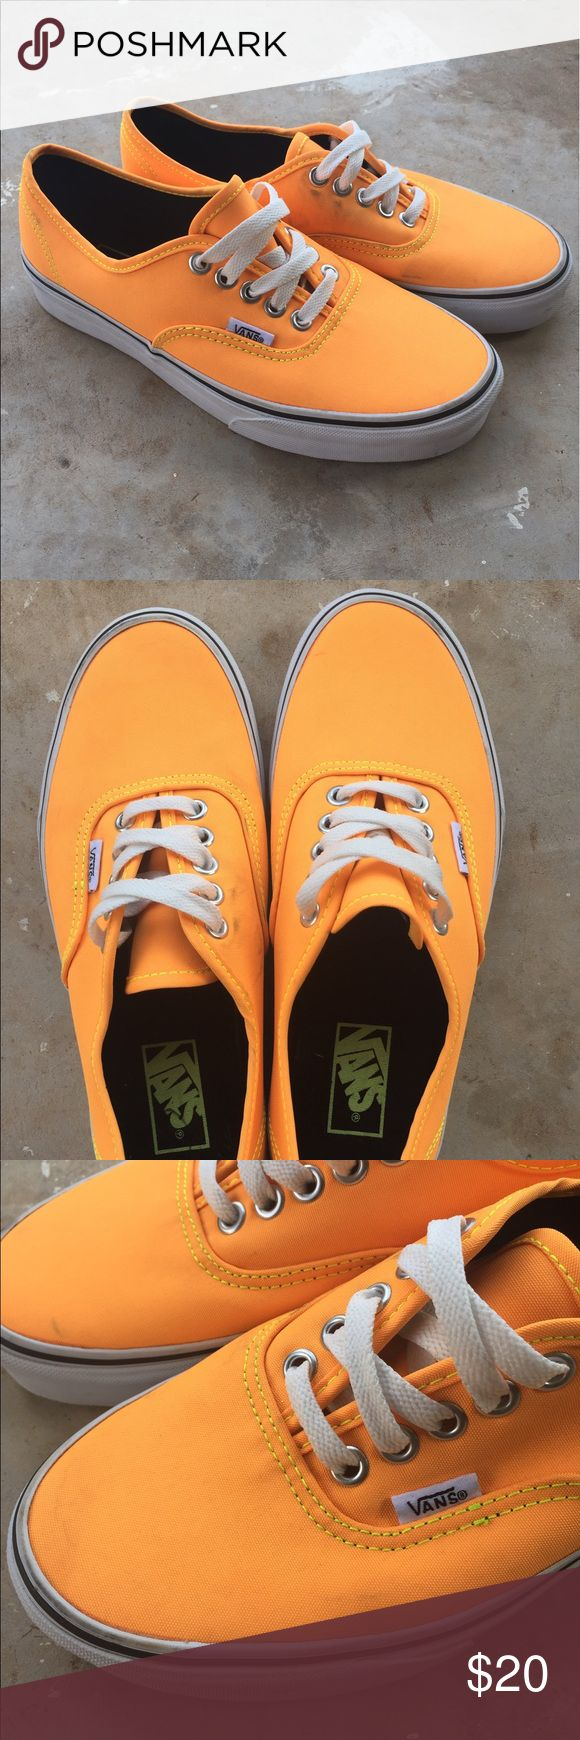 Vans Highlighter orange vans. Never worn before but they do have a little smudge. Should be able to clean have not tried. Vans Shoes Sneakers